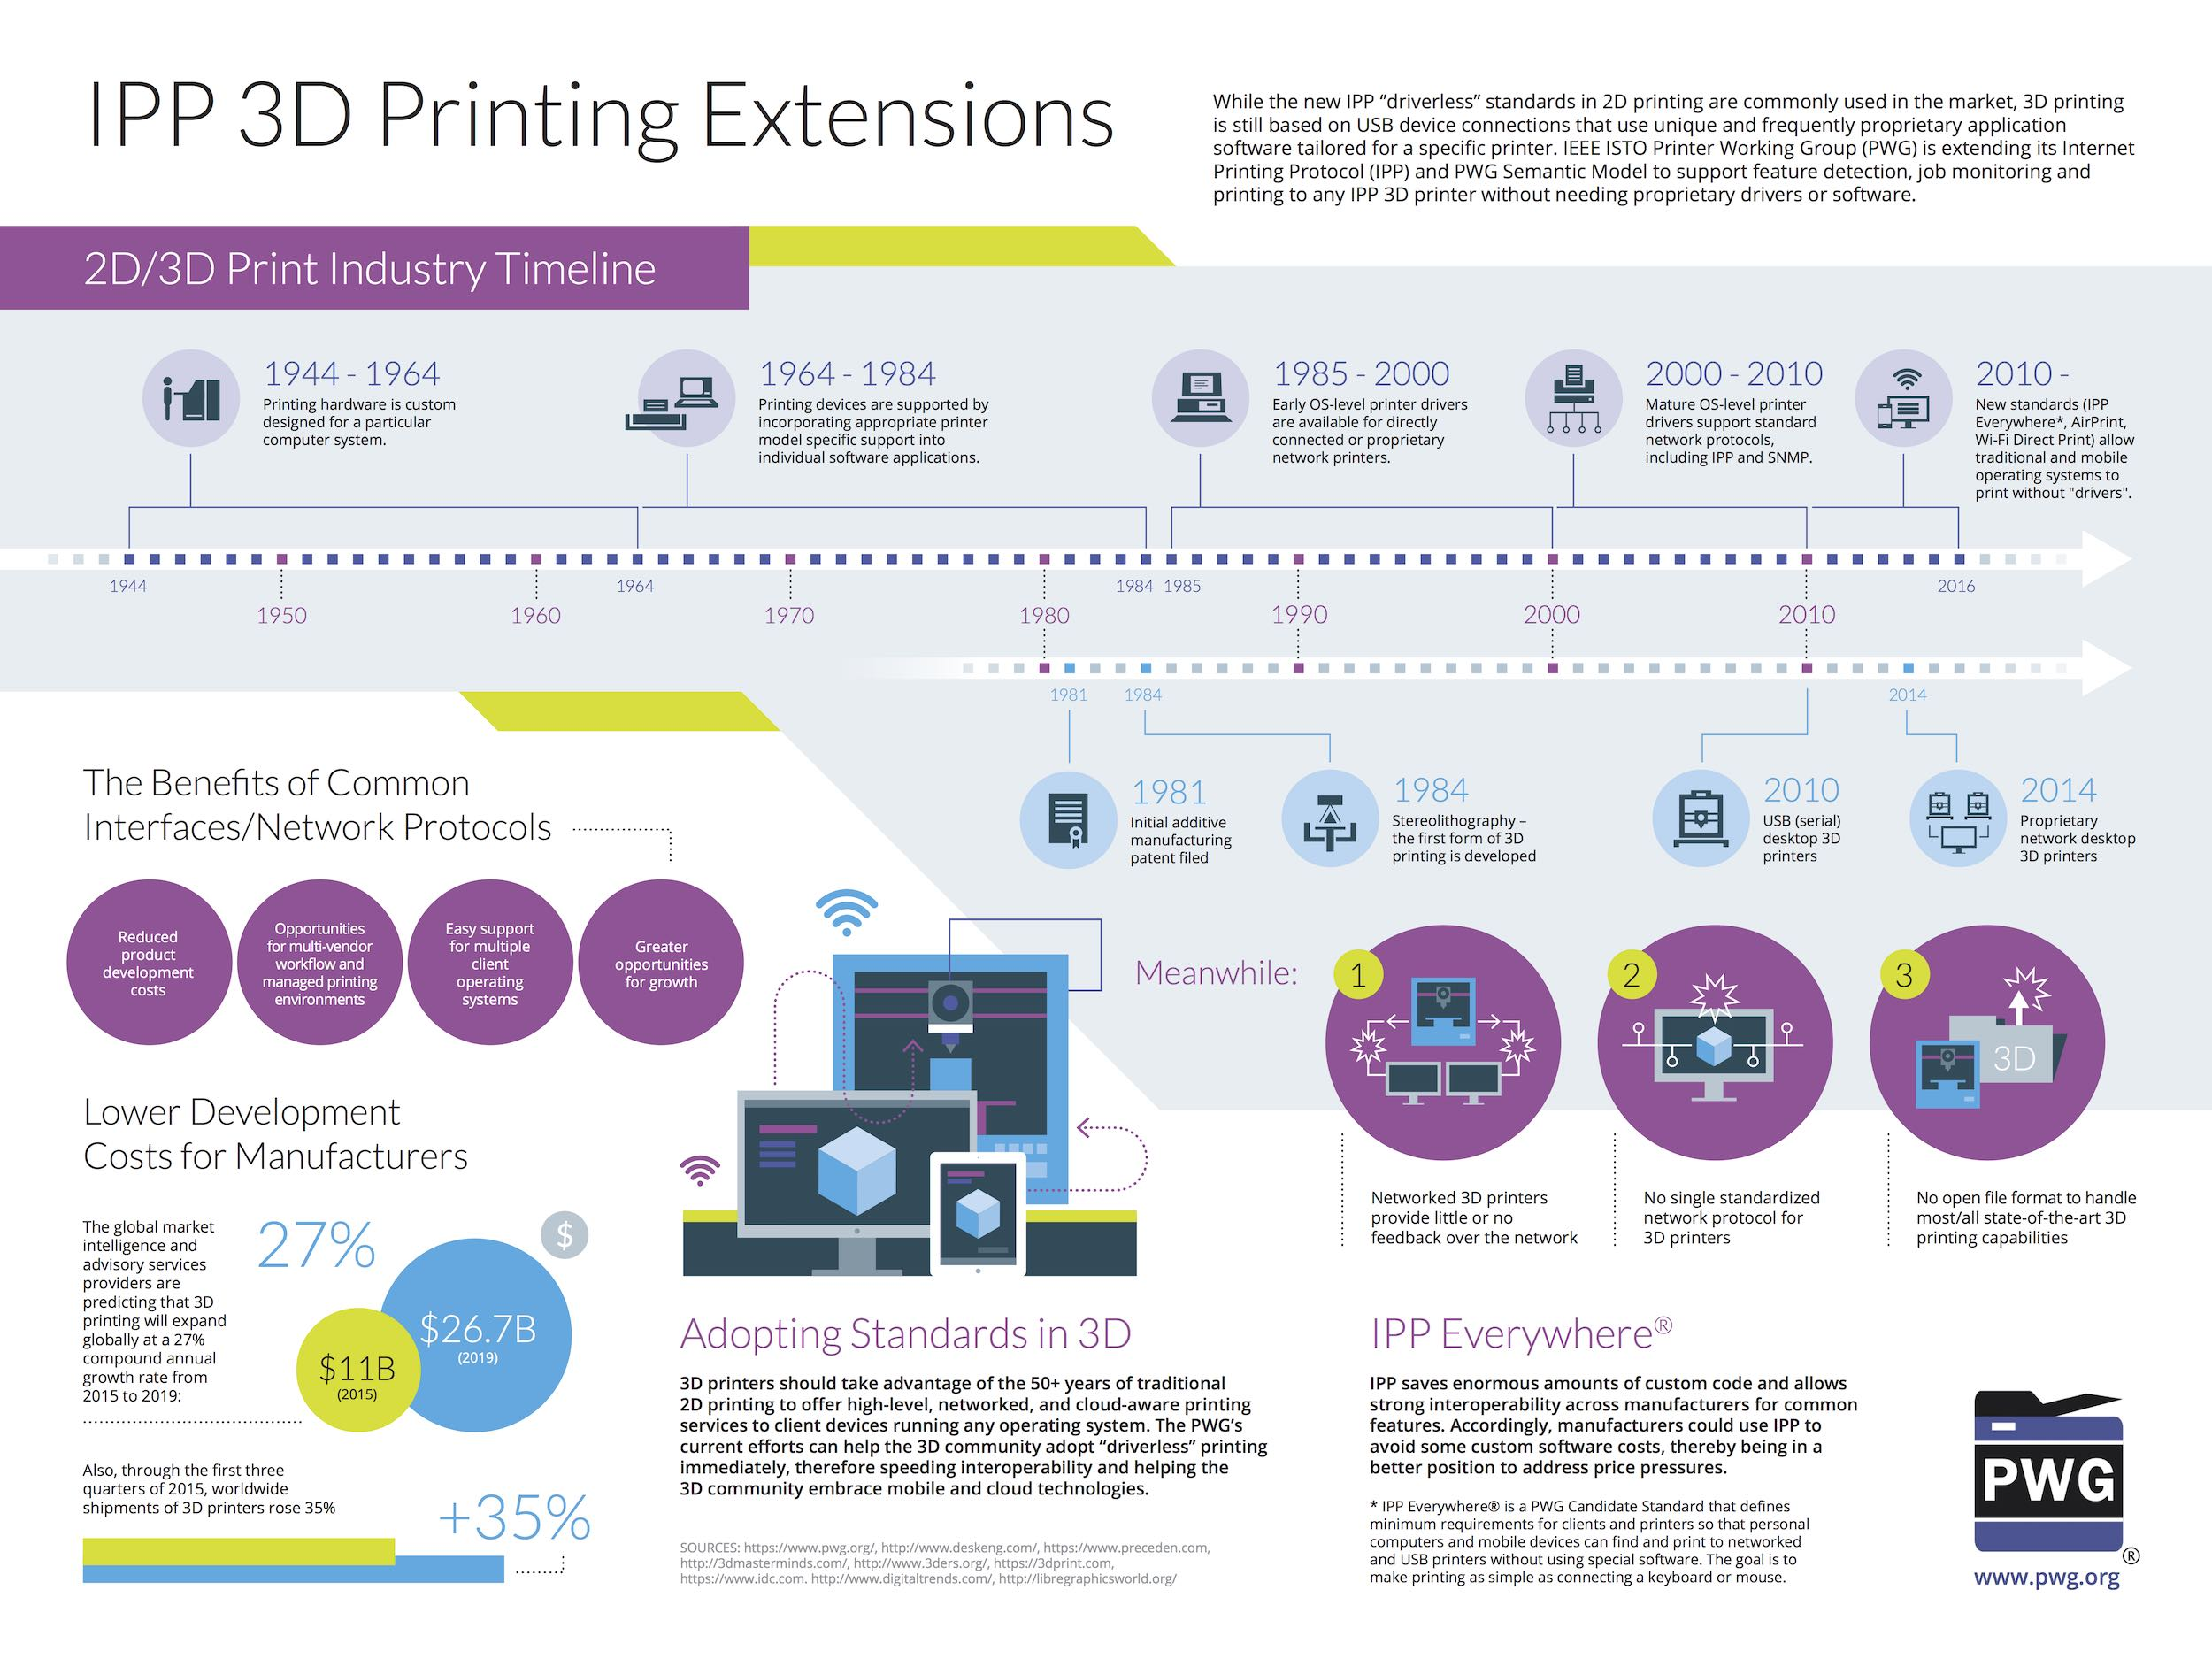 PWG IPP and 3D Printing Infographic. Image via PWG.